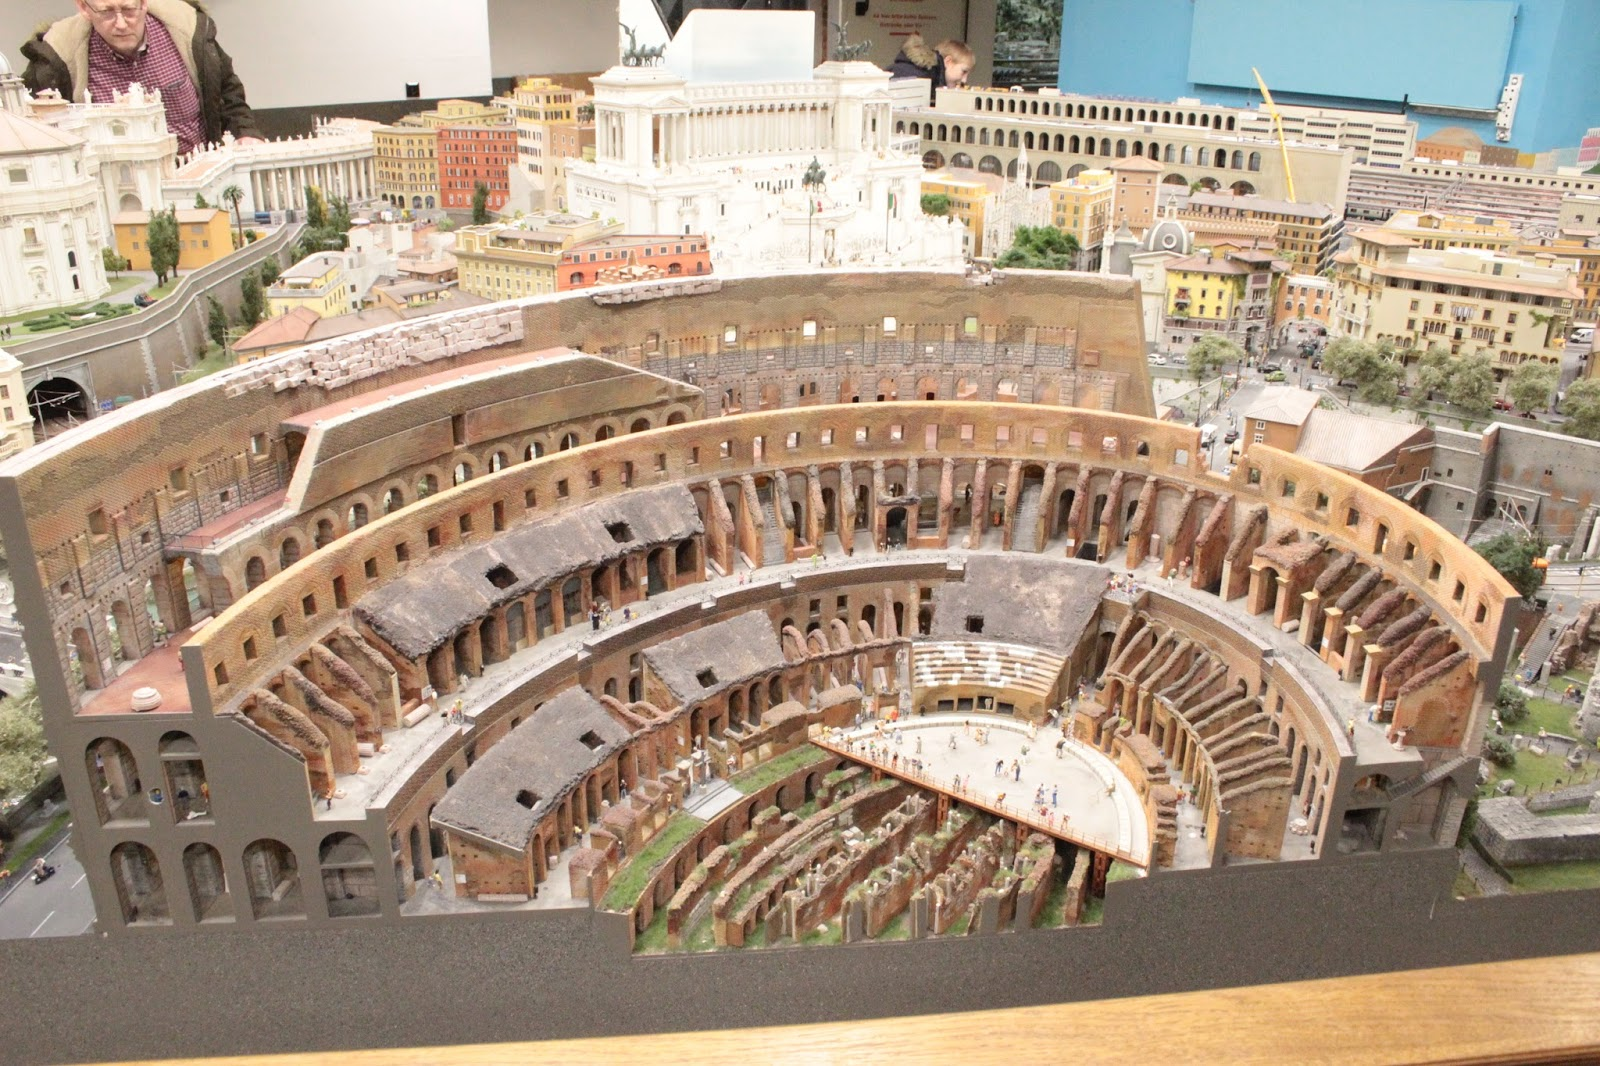 barcoola miniatur wunderland hamburg ammmmazing italy and monarco. Black Bedroom Furniture Sets. Home Design Ideas